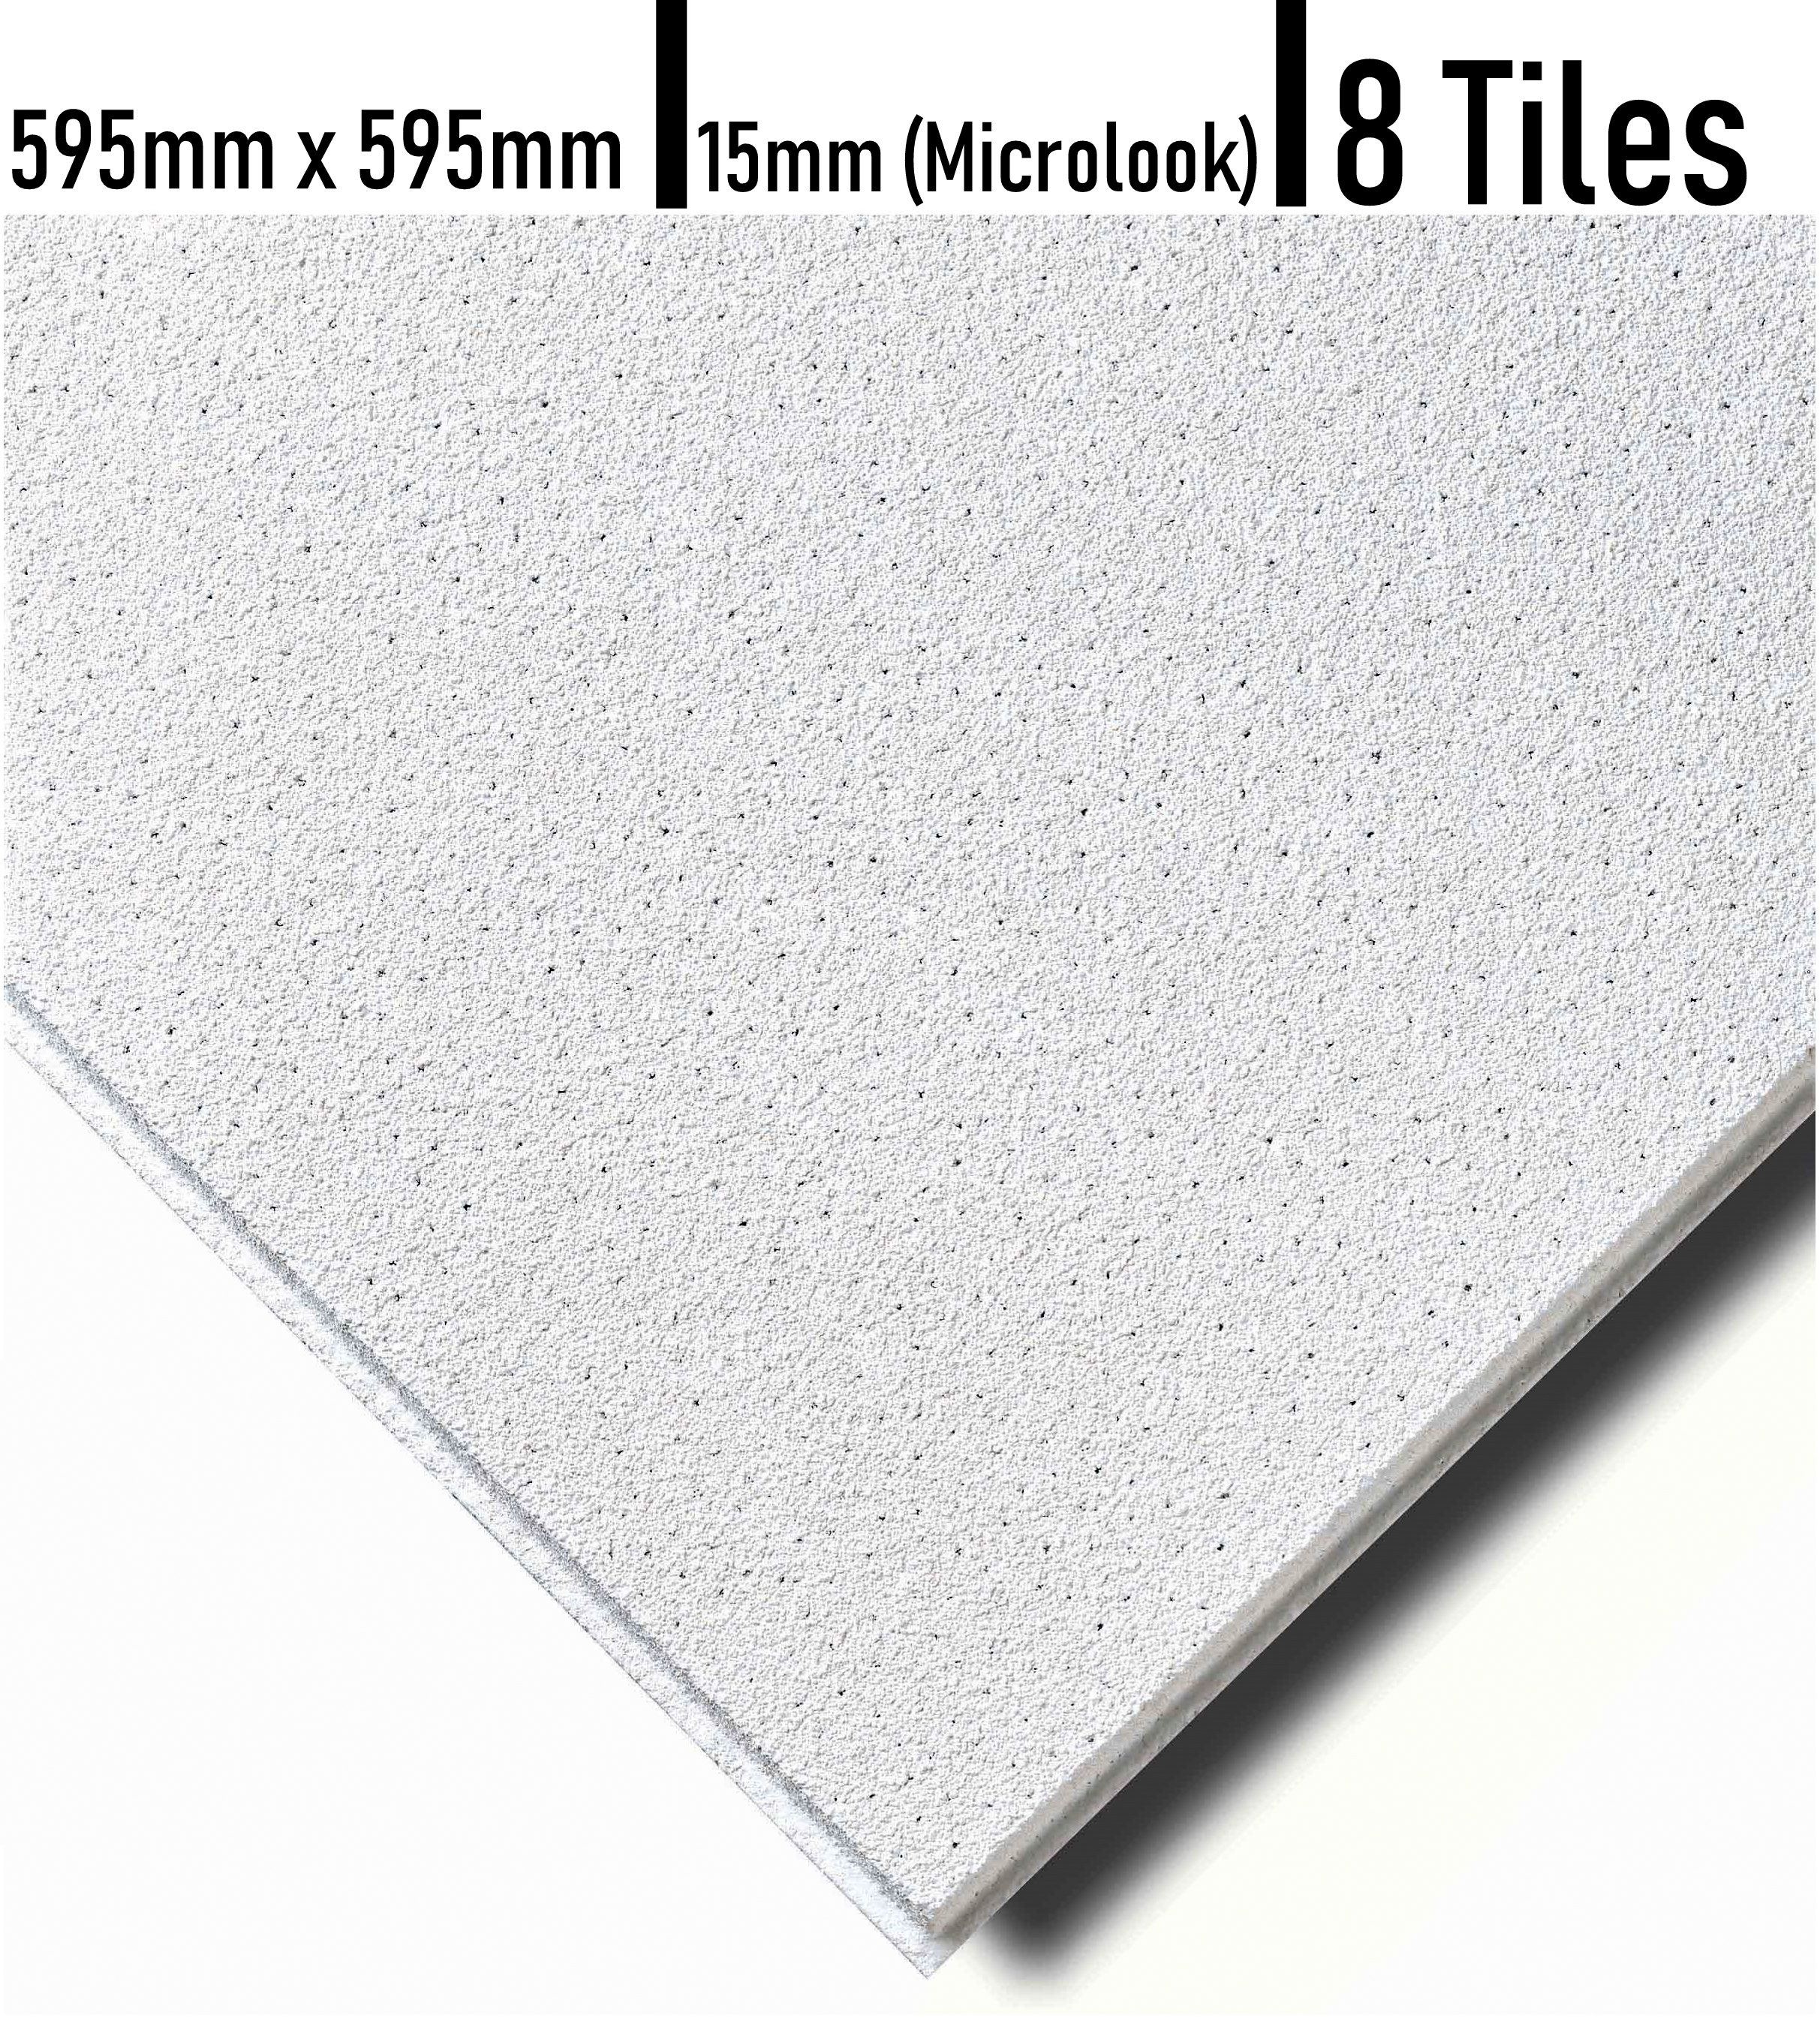 Microlook Sandtone Surf Tegular 595 x 595 Suspended Ceiling Tiles